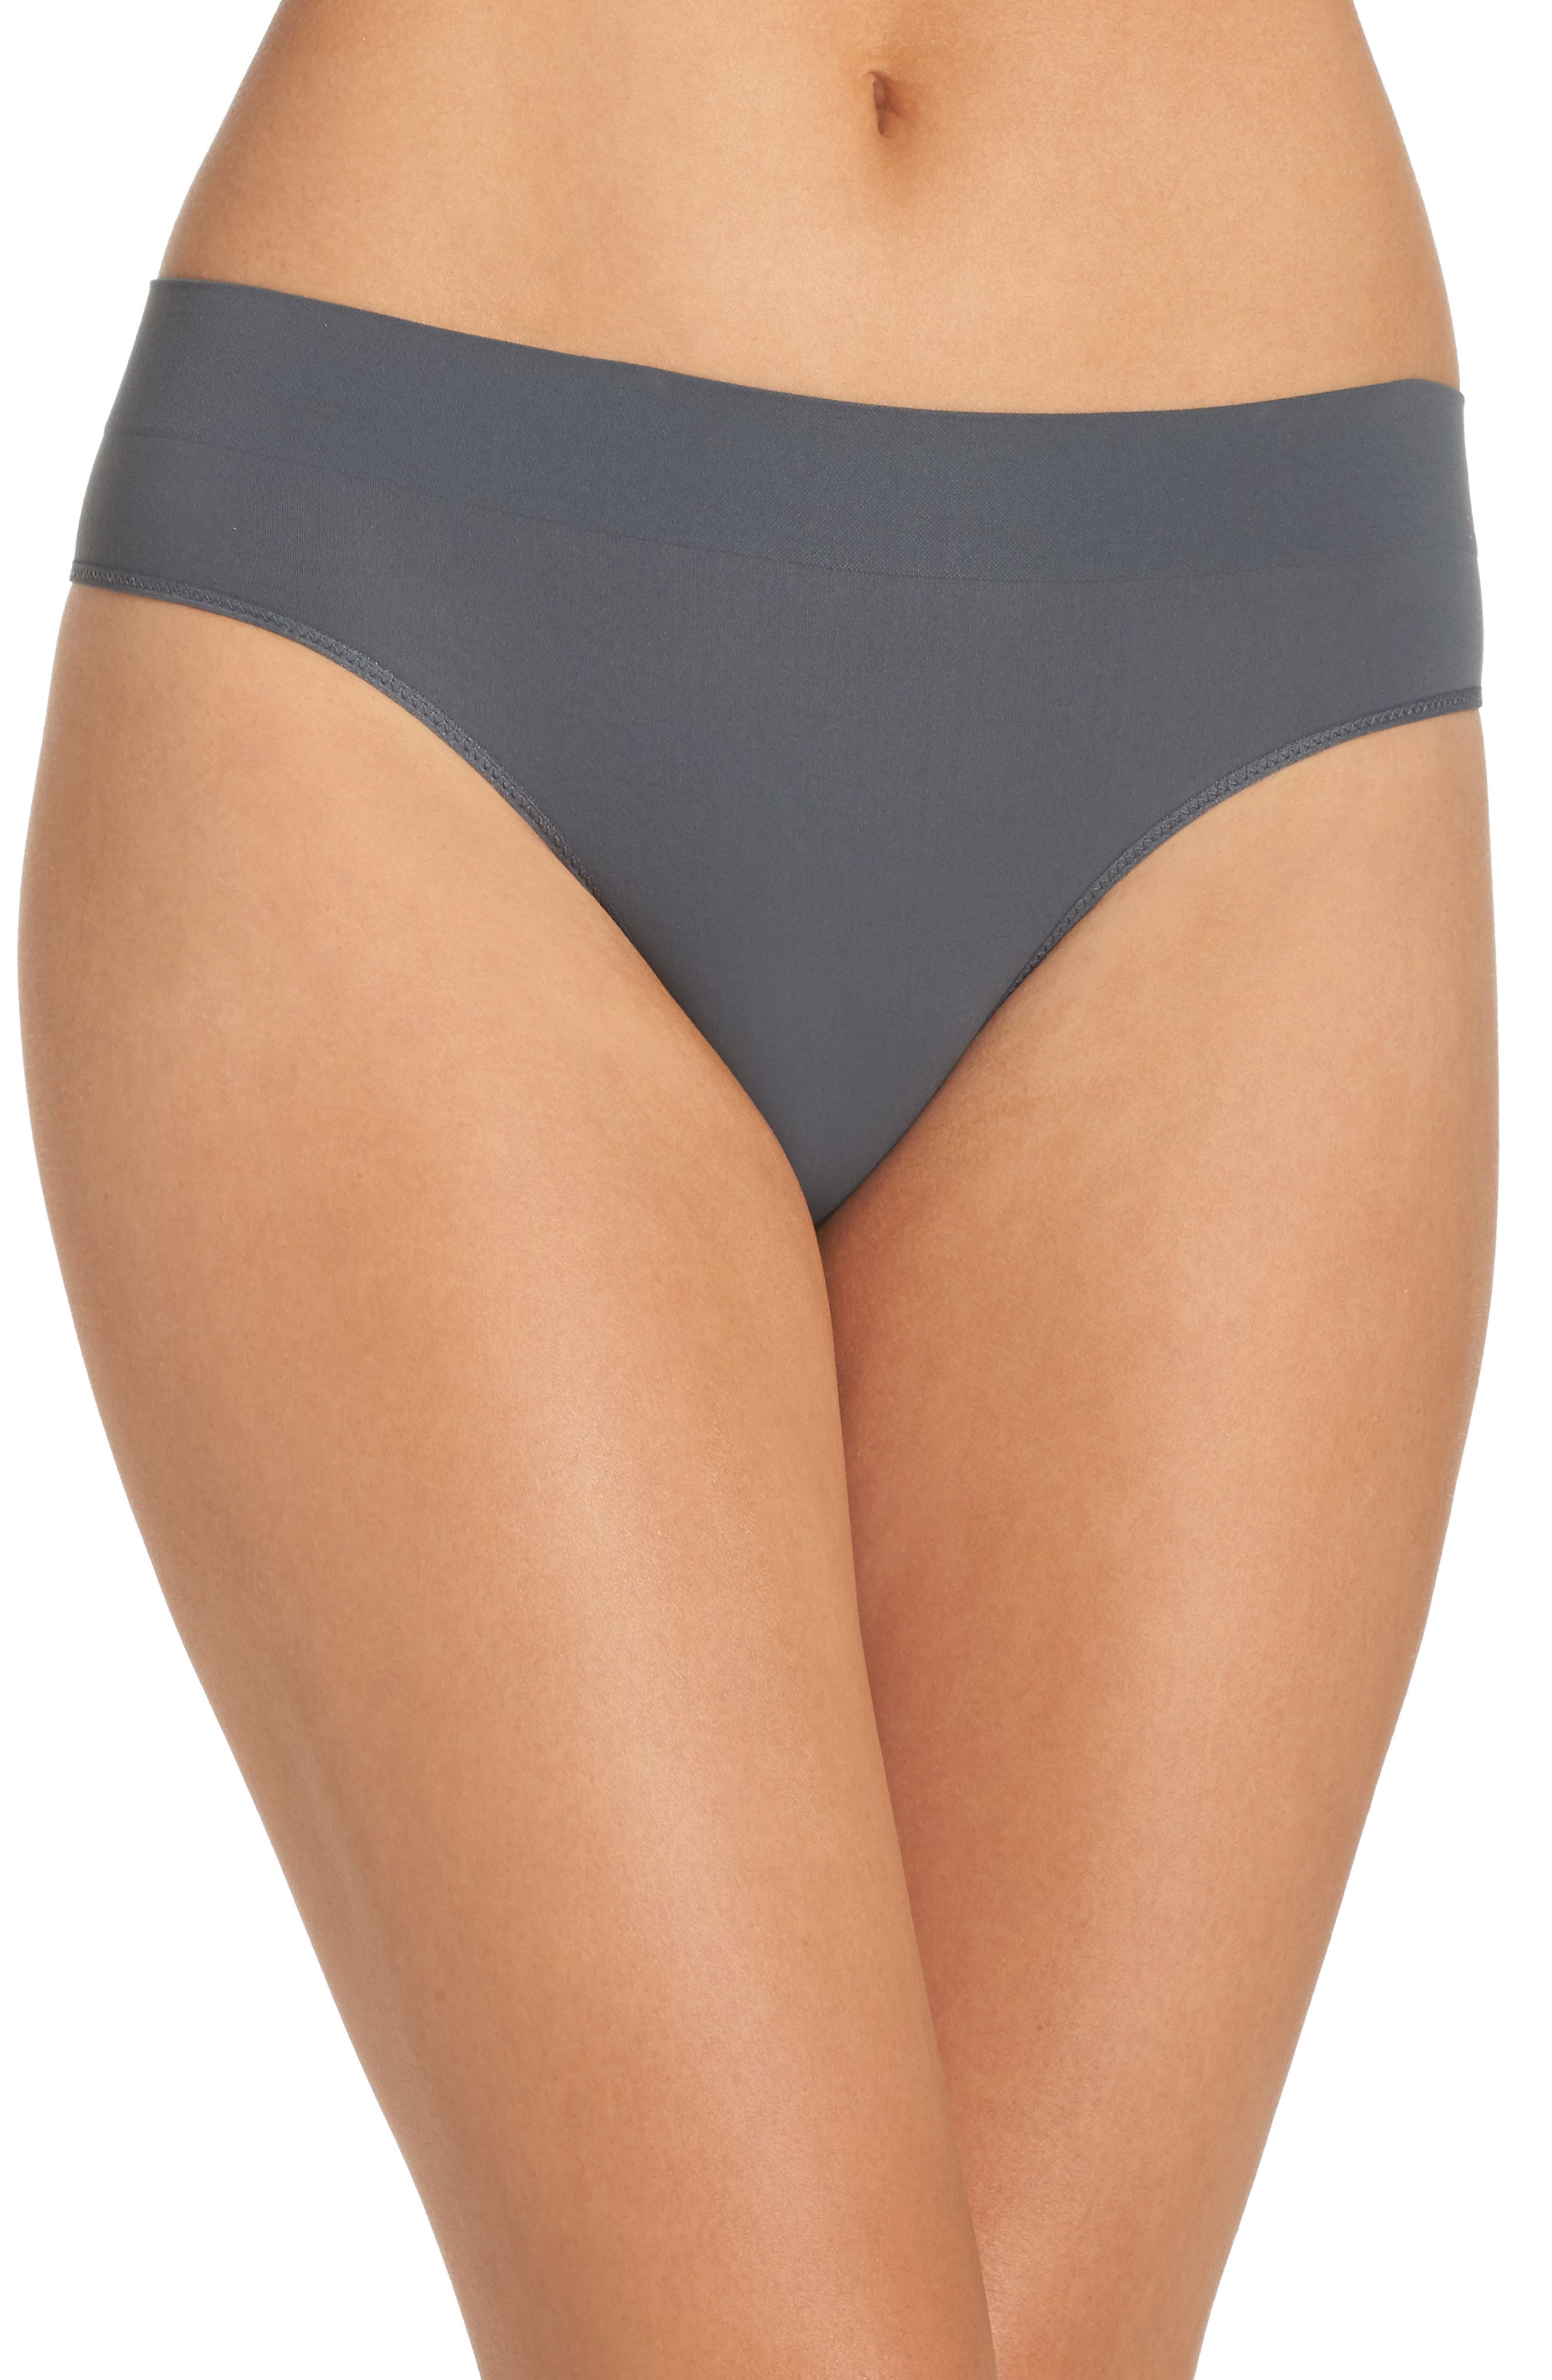 Main Image - DKNY LiteWear Seamless Thong (3 for $33)